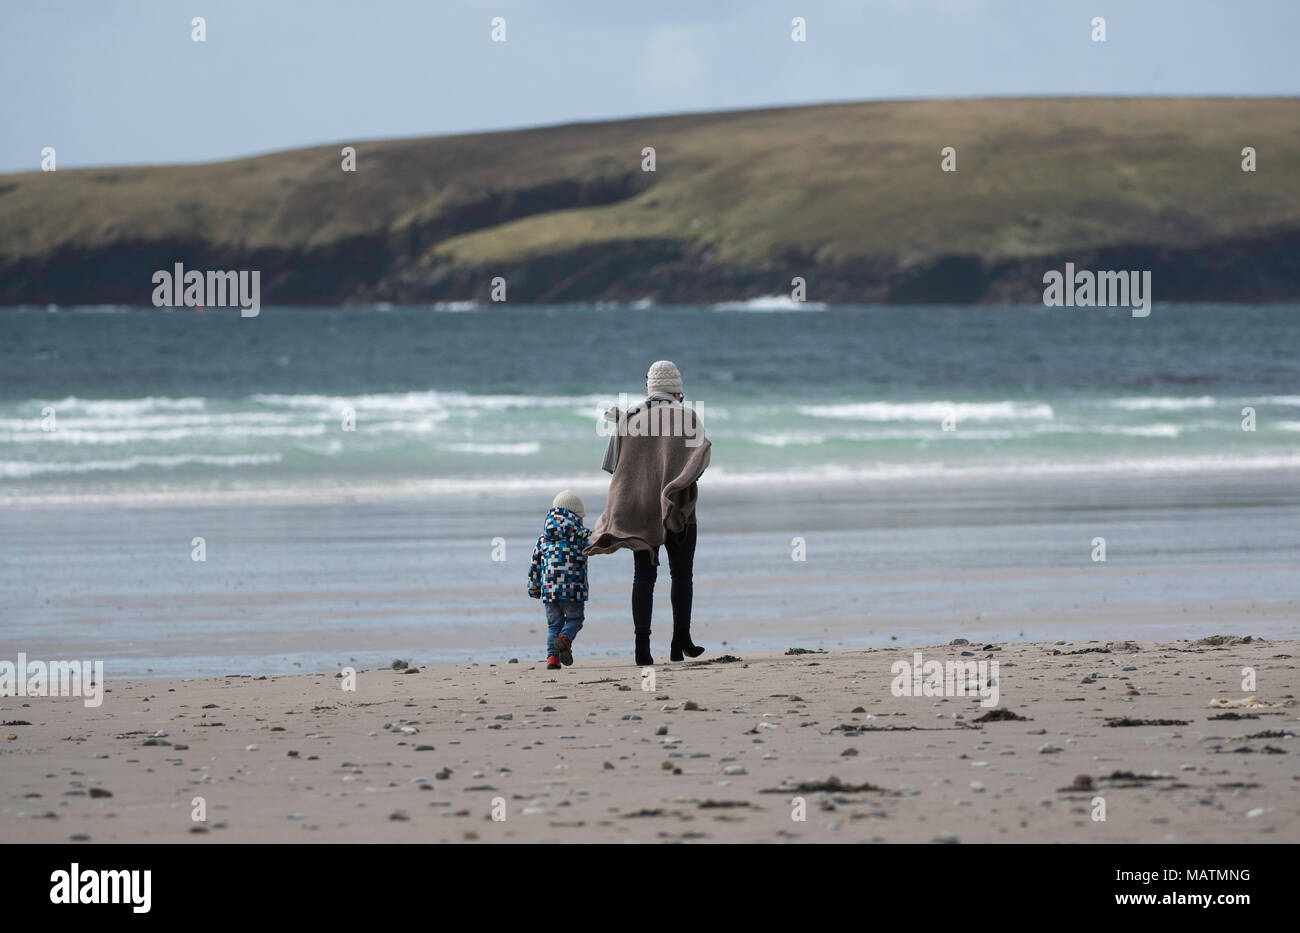 Mother and young son strolling, walking on beach during windy weather, Warm Clothes and Woollen White Hats, Cliffs and Green Island in the background Stock Photo